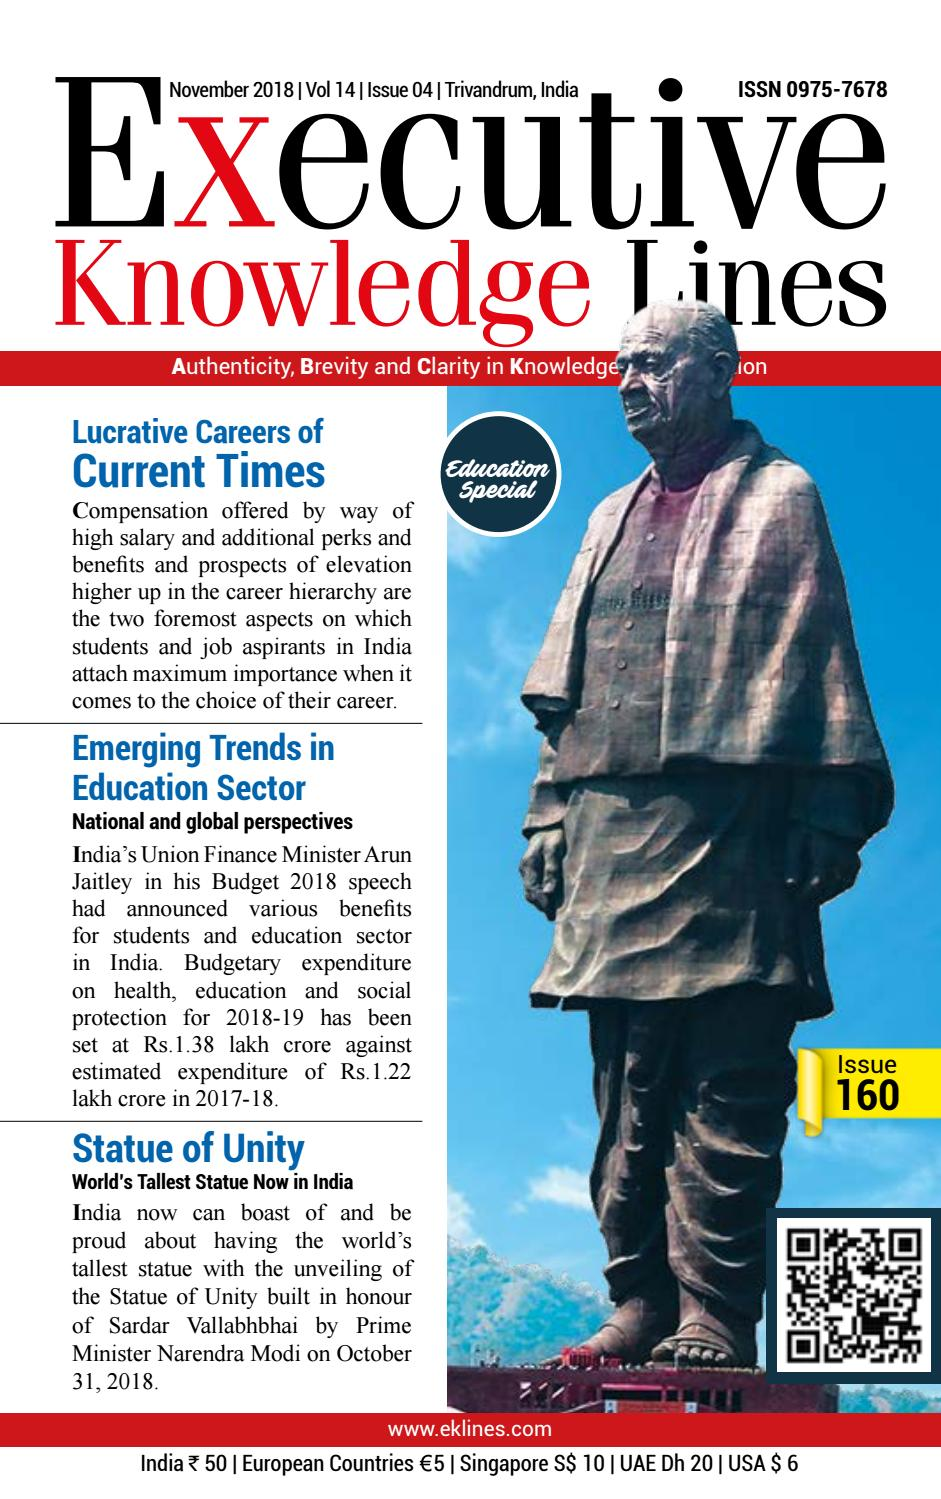 EXECUTIVE KNOWLEDGE LINES-November 2018 by Metro Mart